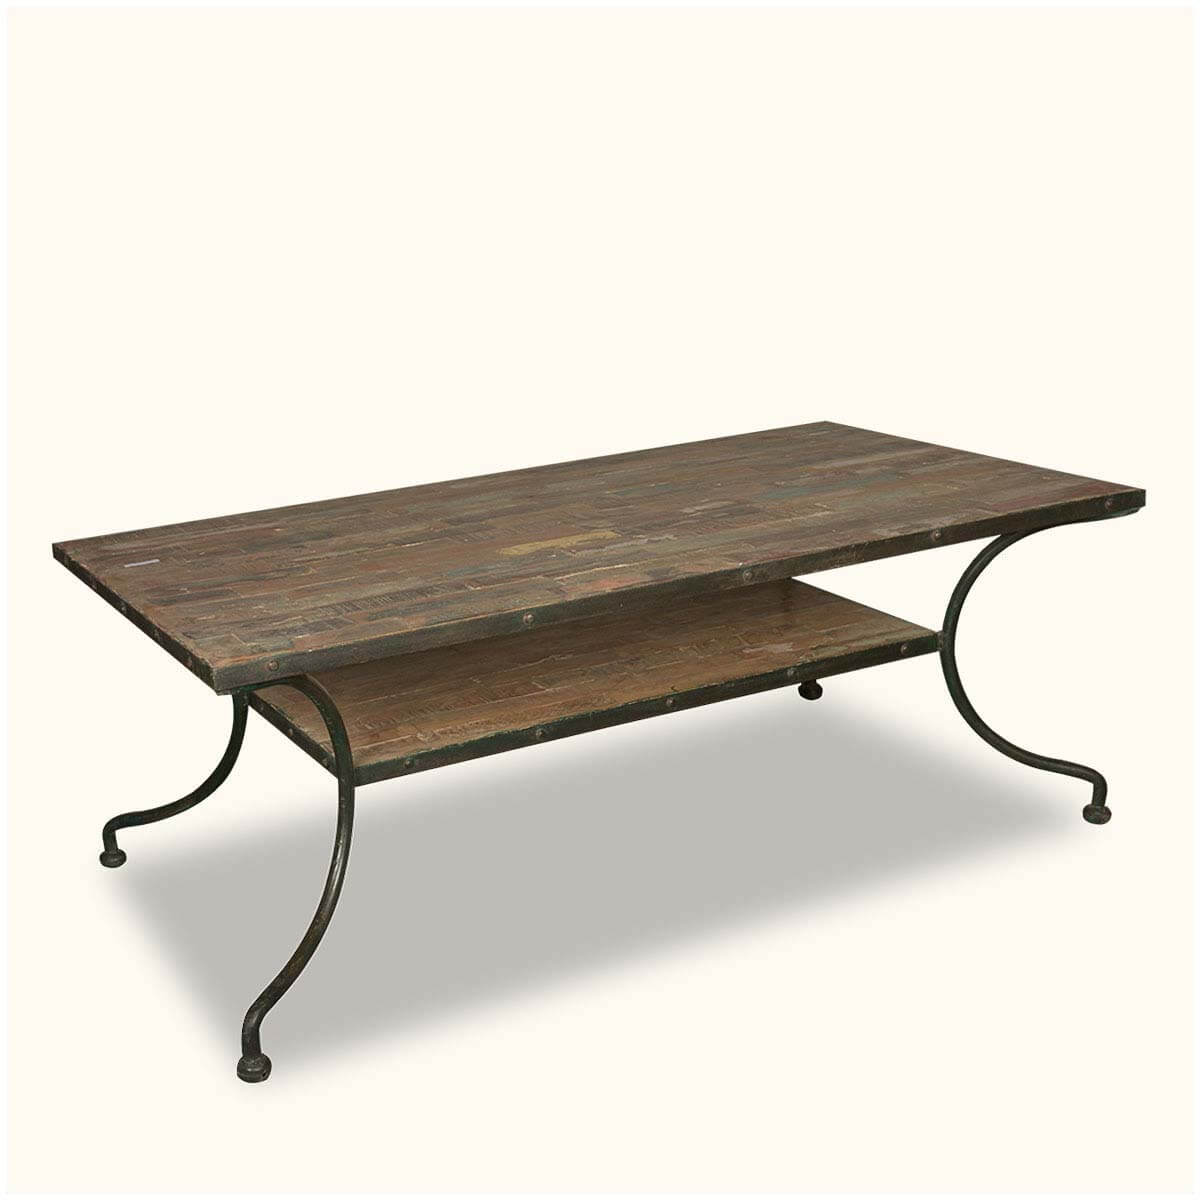 Reclaimed wood iron industrial 2 tier rustic coffee table Rustic wood and metal coffee table